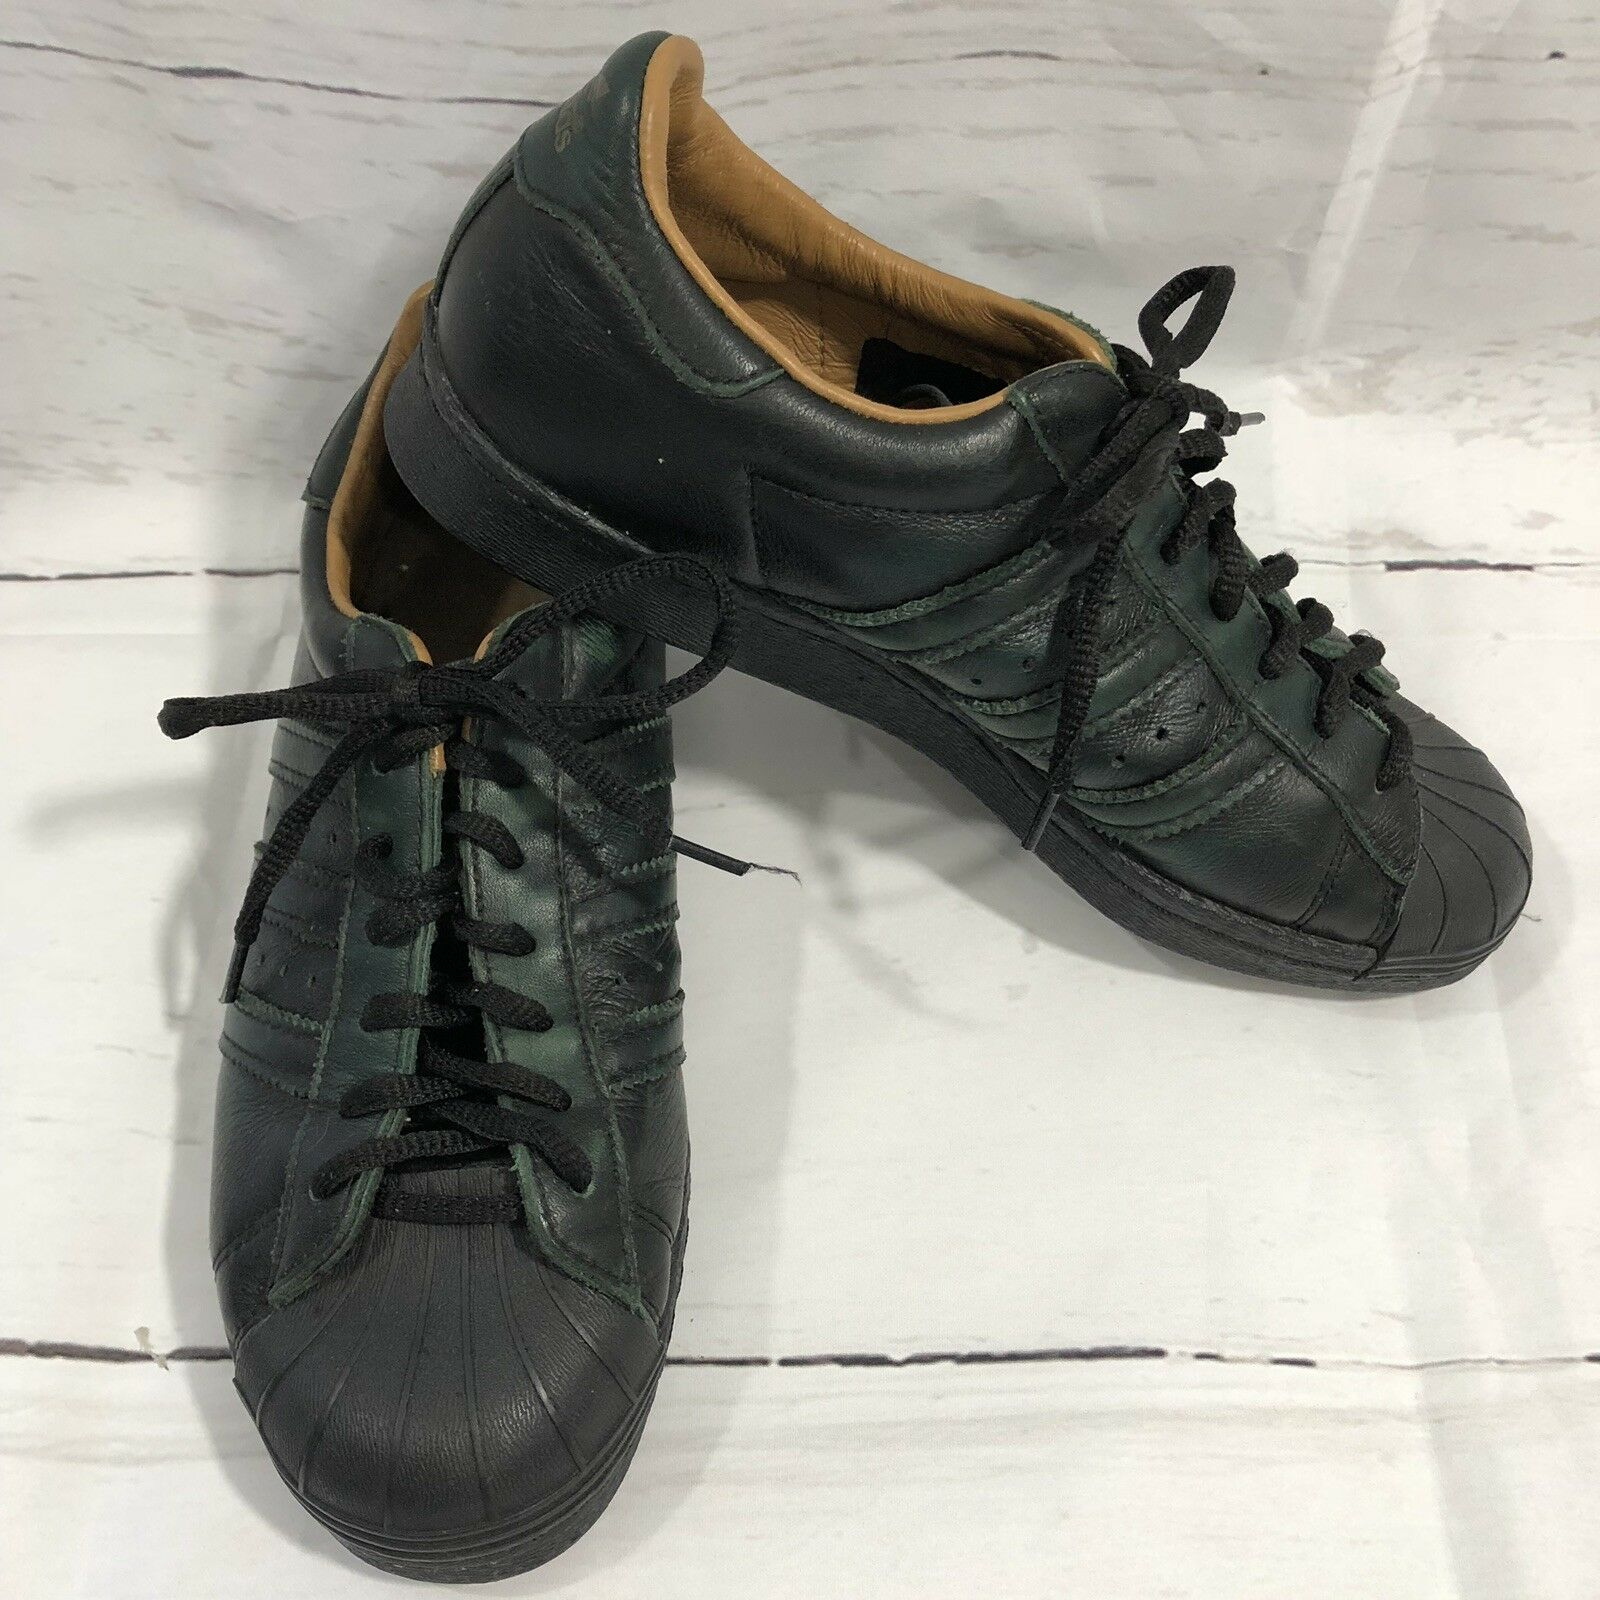 Adidas Superstar Sneakers 80s Dark Green Shell Toe Leather Mens Size 6.5  men